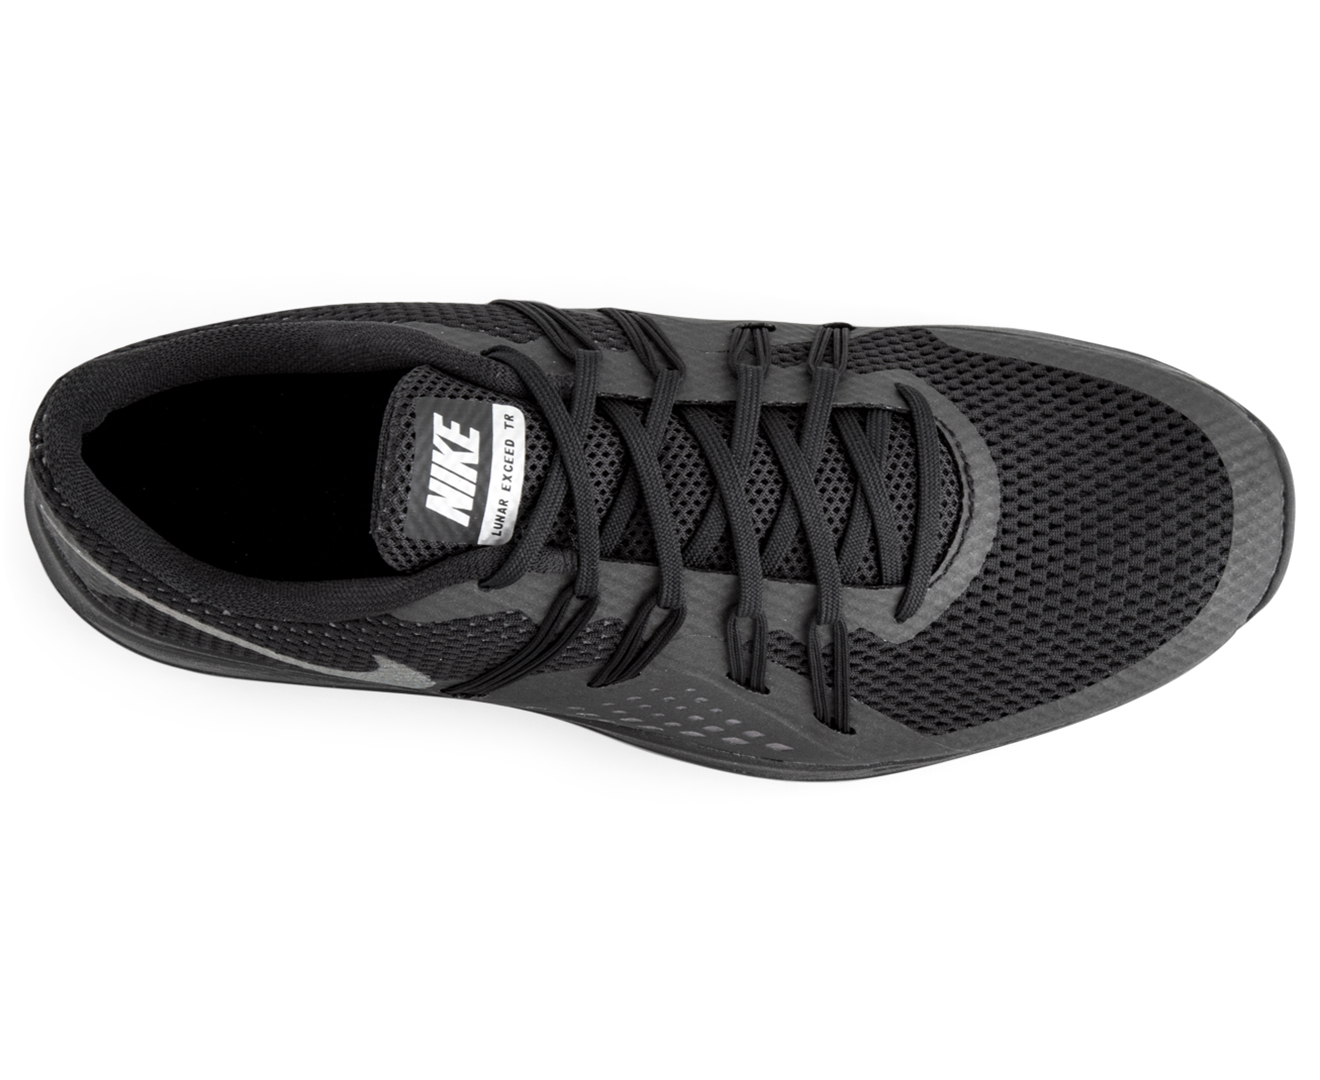 250ae0e0ff70 Nike Women s Lunar Exceed TR Metallic Shoe - Black Metallic Silver ...